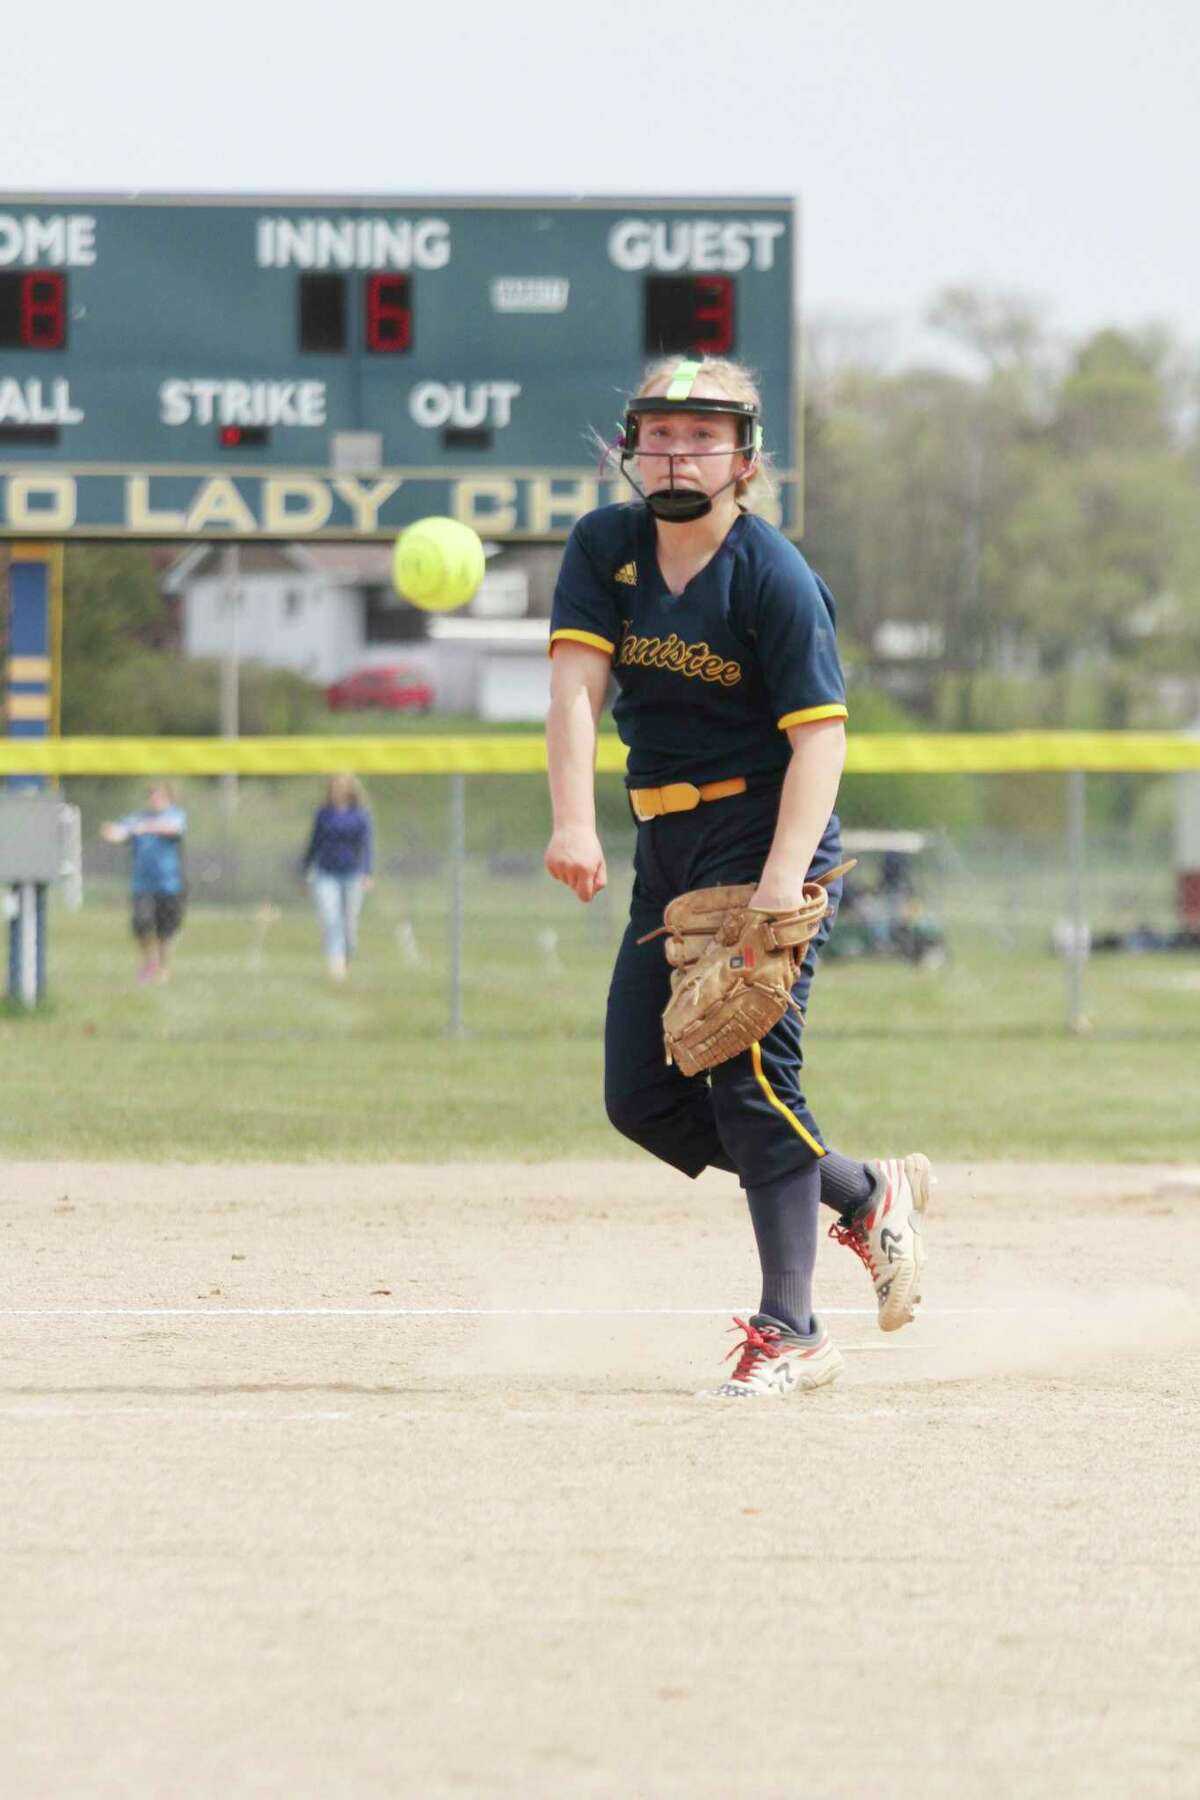 Manistee's Addy Witkowski delivers a pitch during the Chippewa 350 Club Invite on Saturday in Manistee. (Dylan Savela/News Advocate)